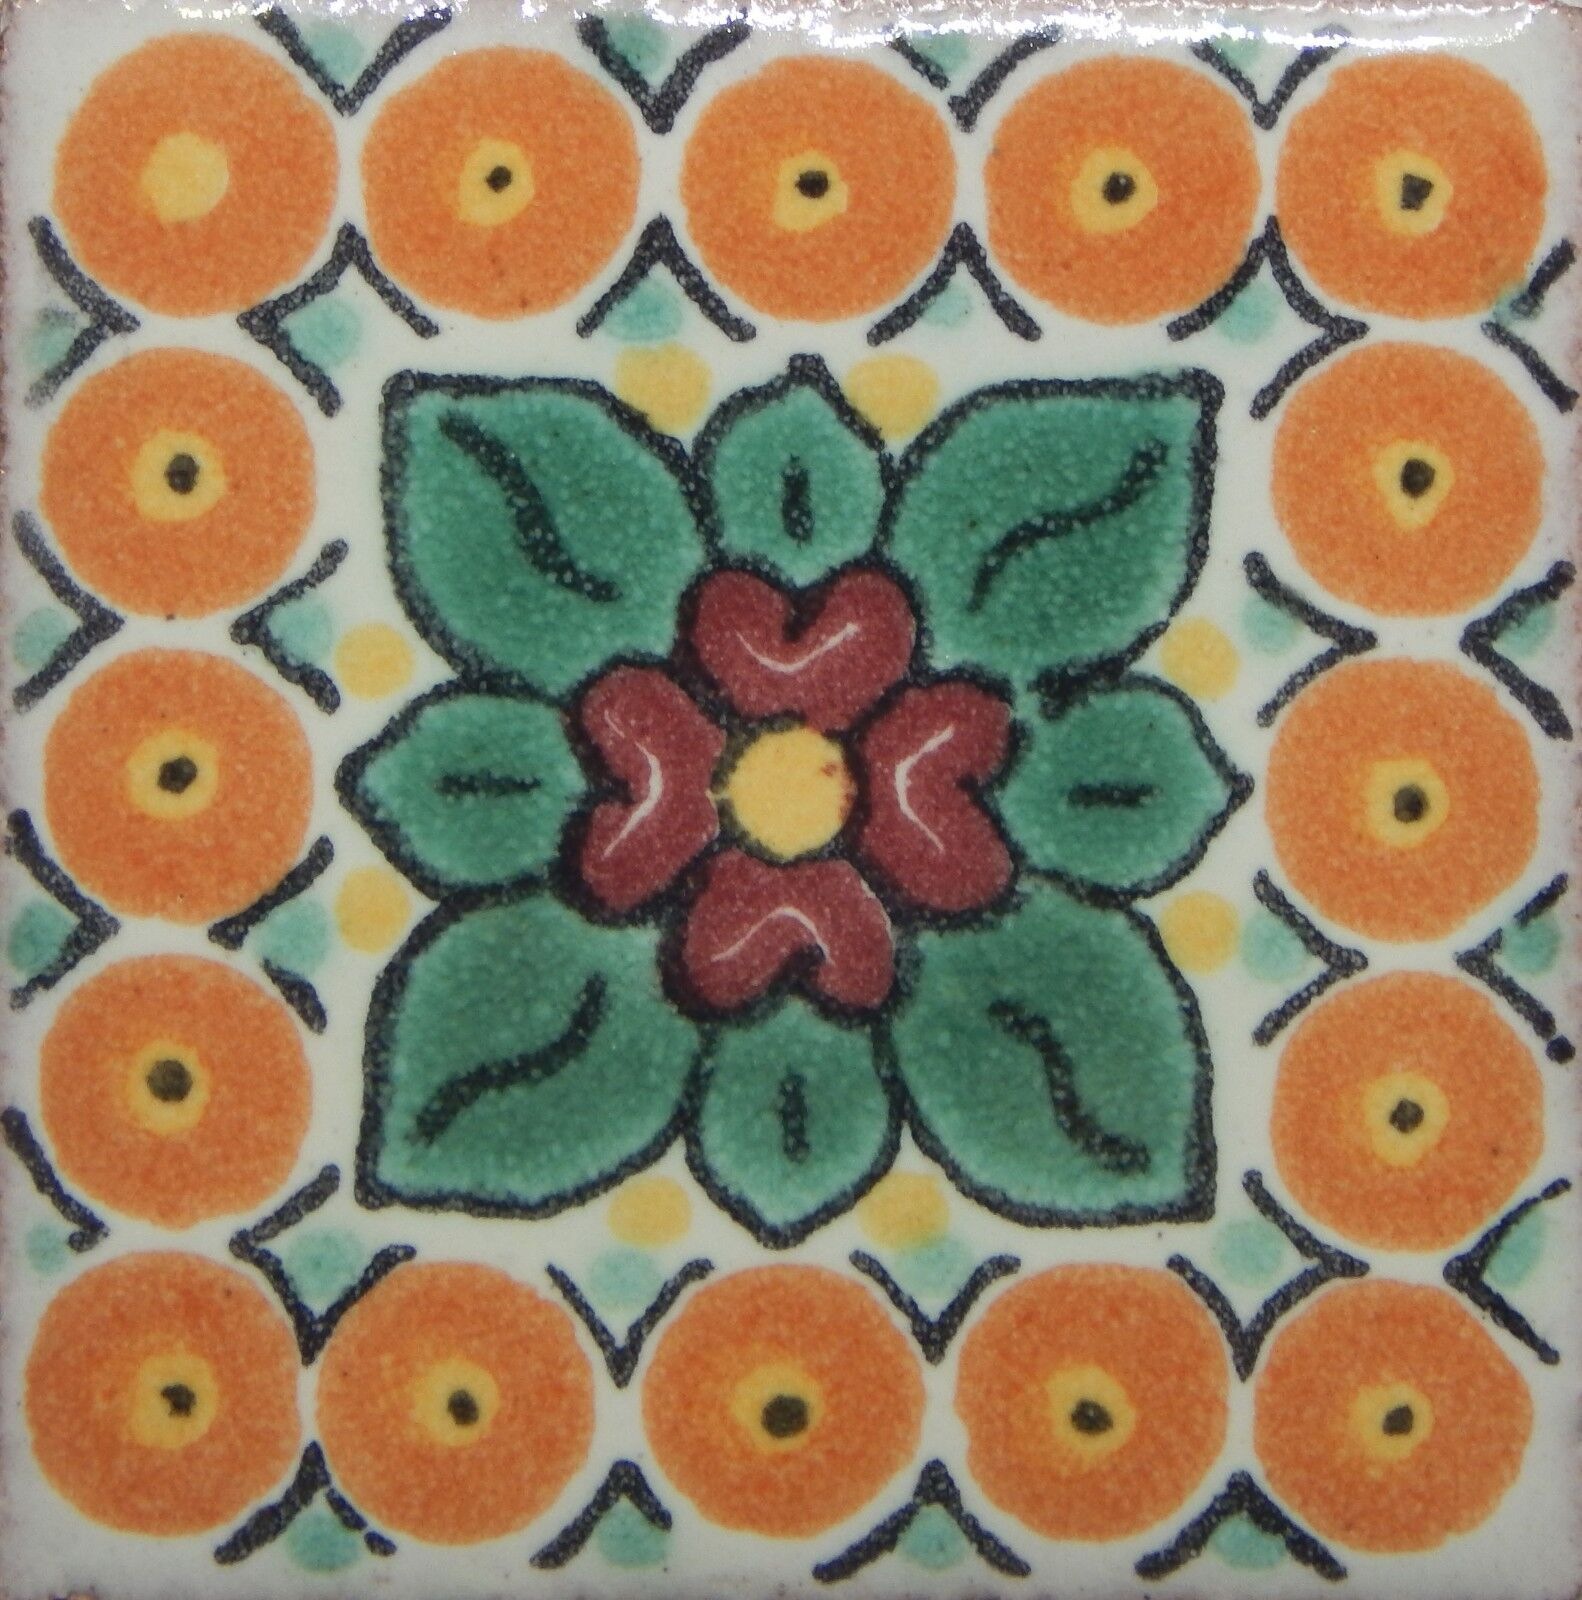 100 TILES Ceramic MEXICAN Talavera Handmade Tile 2x2 Clay Mexico Pottery 2-013